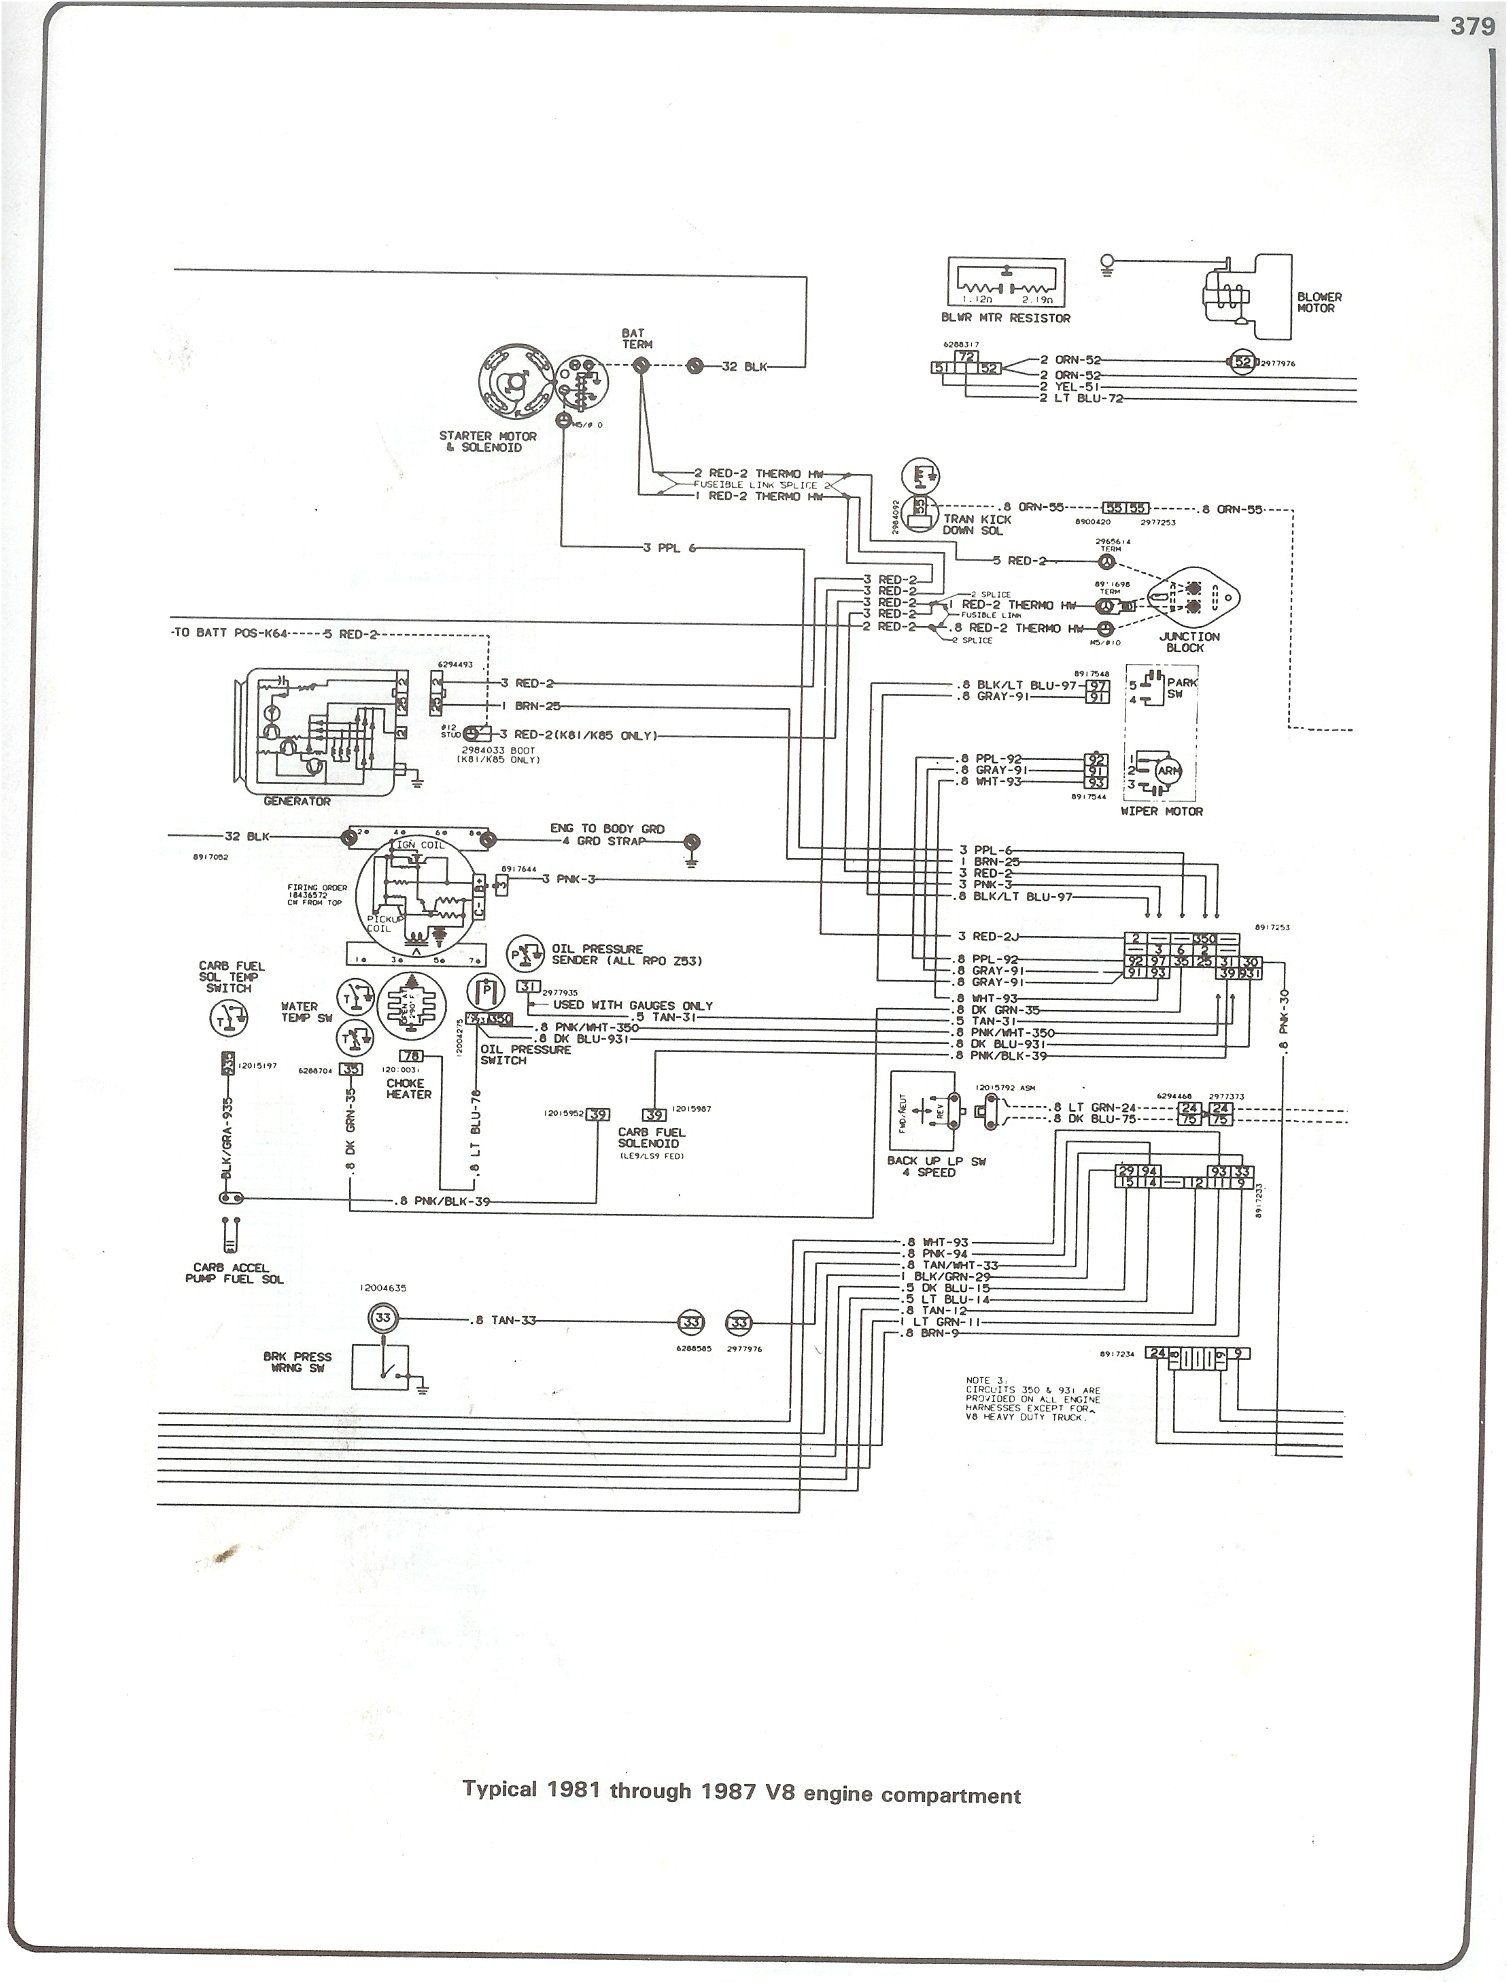 73 87 chevy truck air conditioning wiring diagram. Black Bedroom Furniture Sets. Home Design Ideas